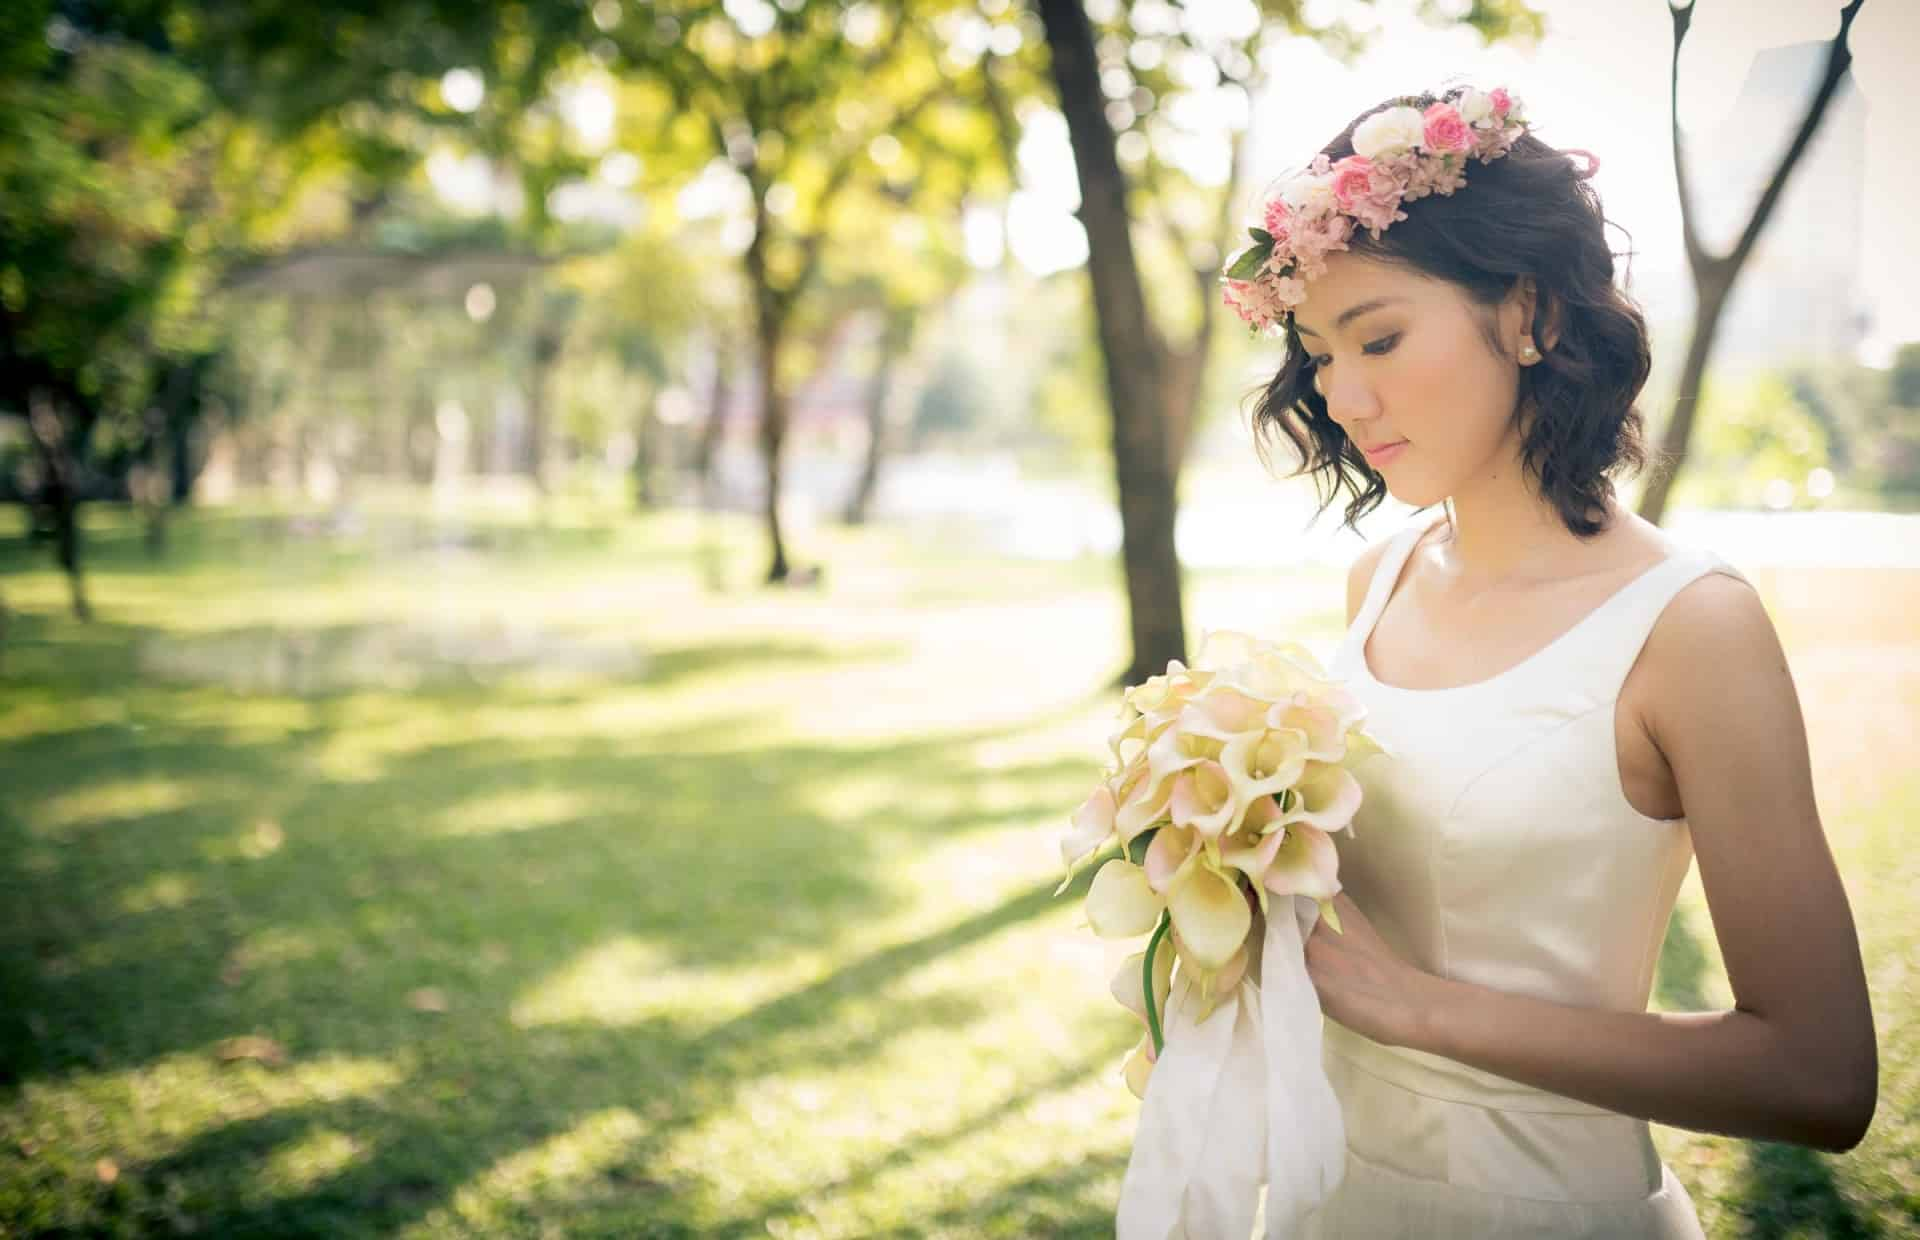 Bangkok Based Wedding Photographer | Thailand Portrait Wedding Photography